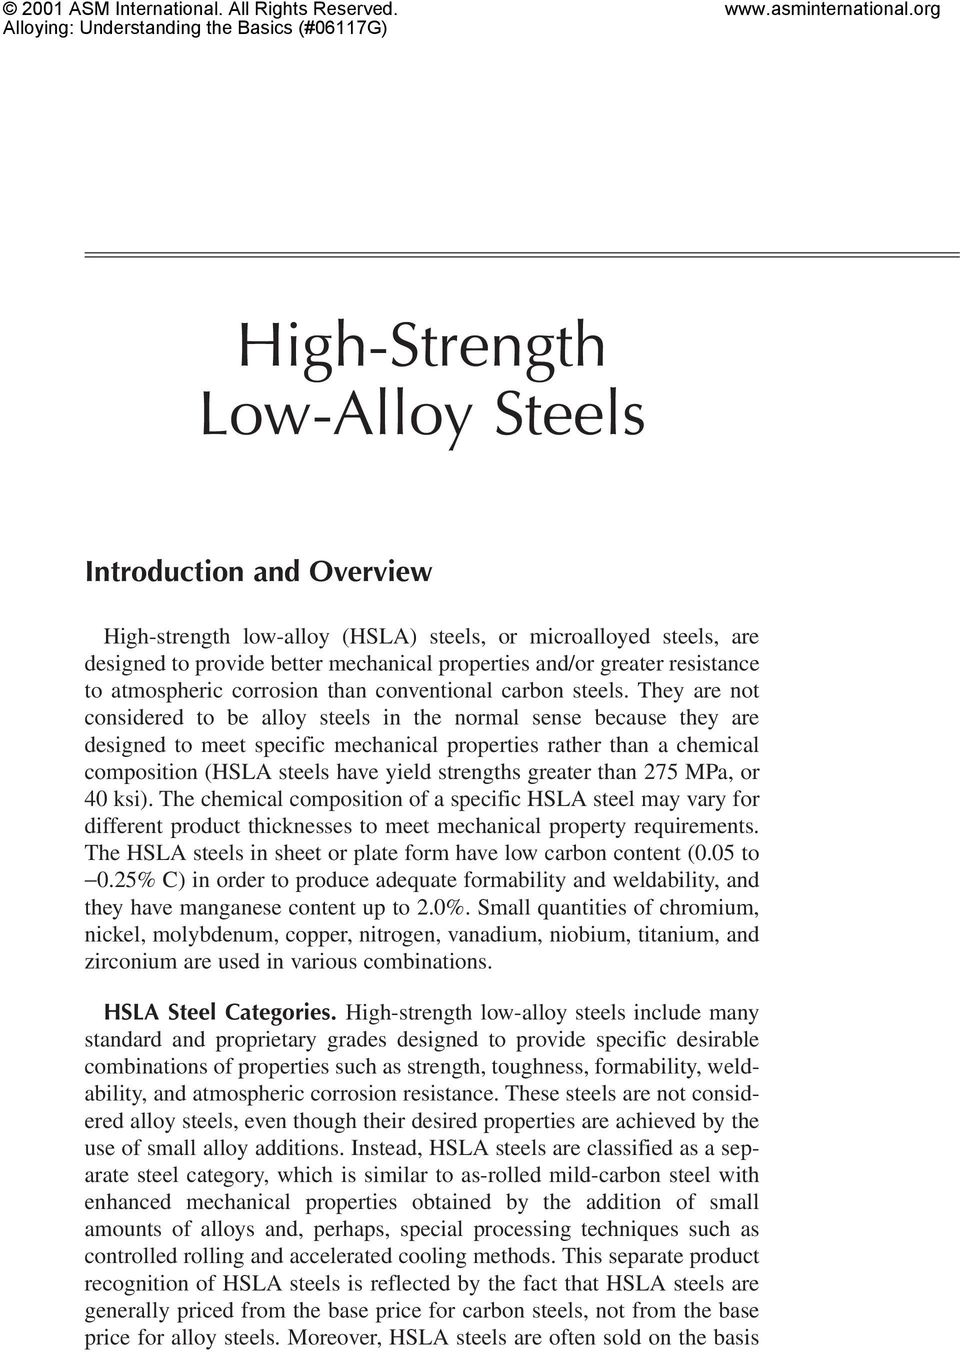 They are not considered to be alloy steels in the normal sense because they are designed to meet specific mechanical properties rather than a chemical composition (HSLA steels have yield strengths